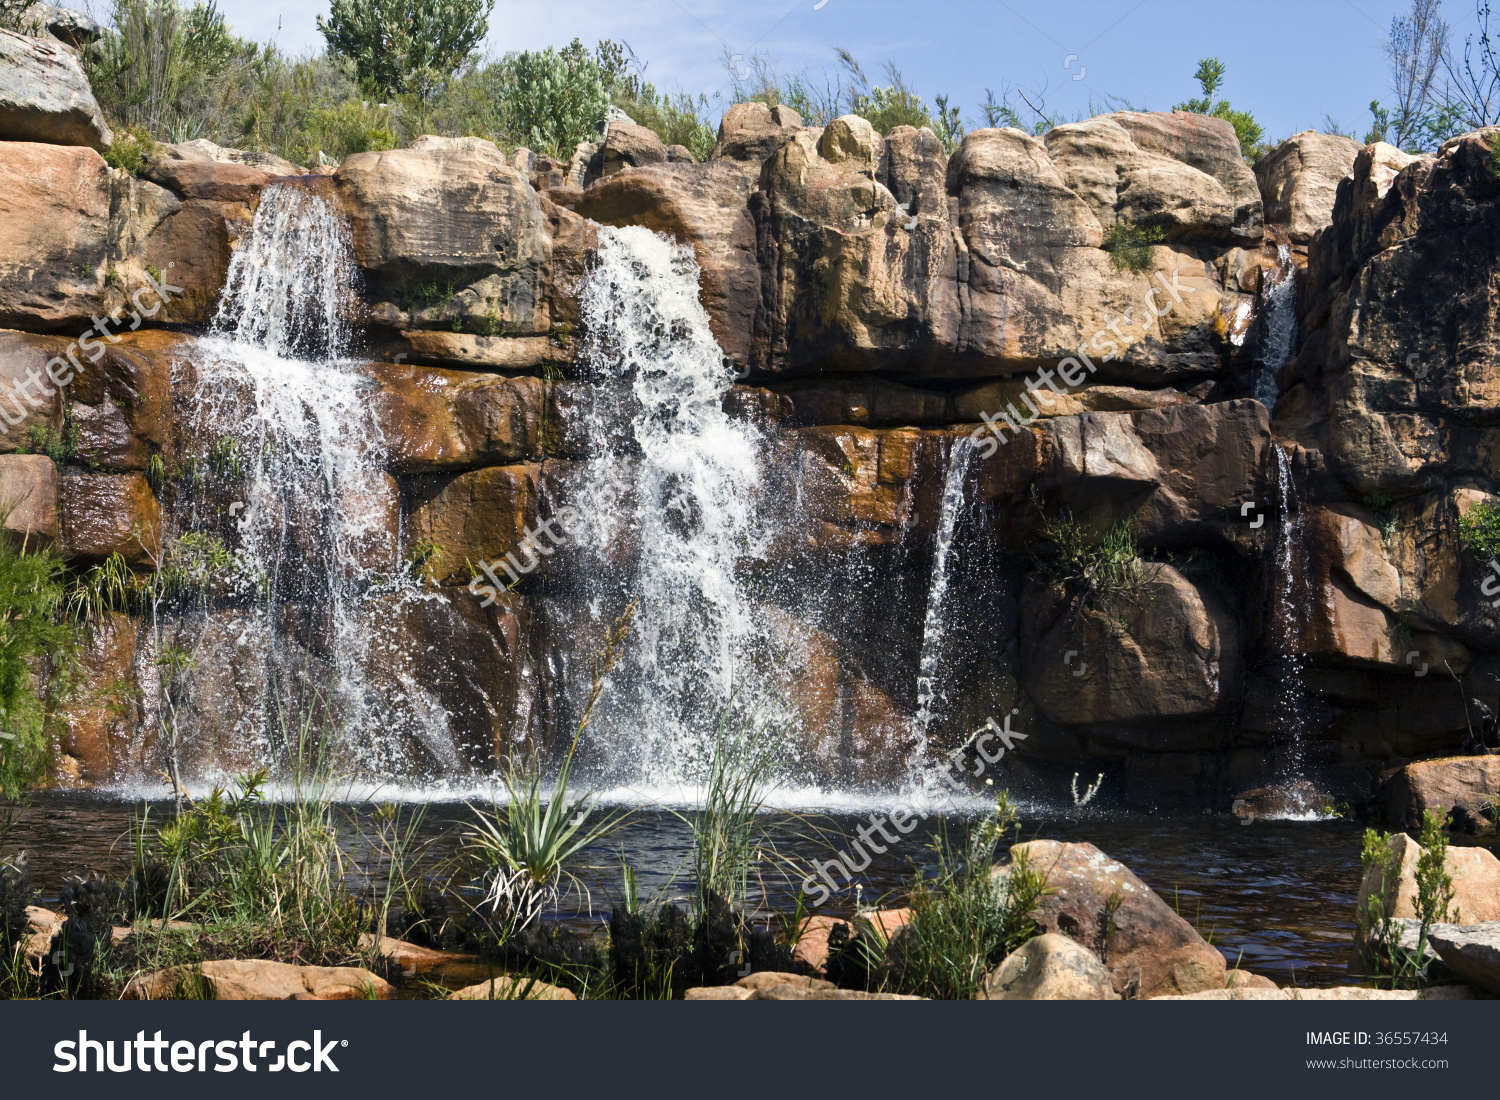 Waterfall In The Cederberg Mountains Of South Africa Stock Photo.